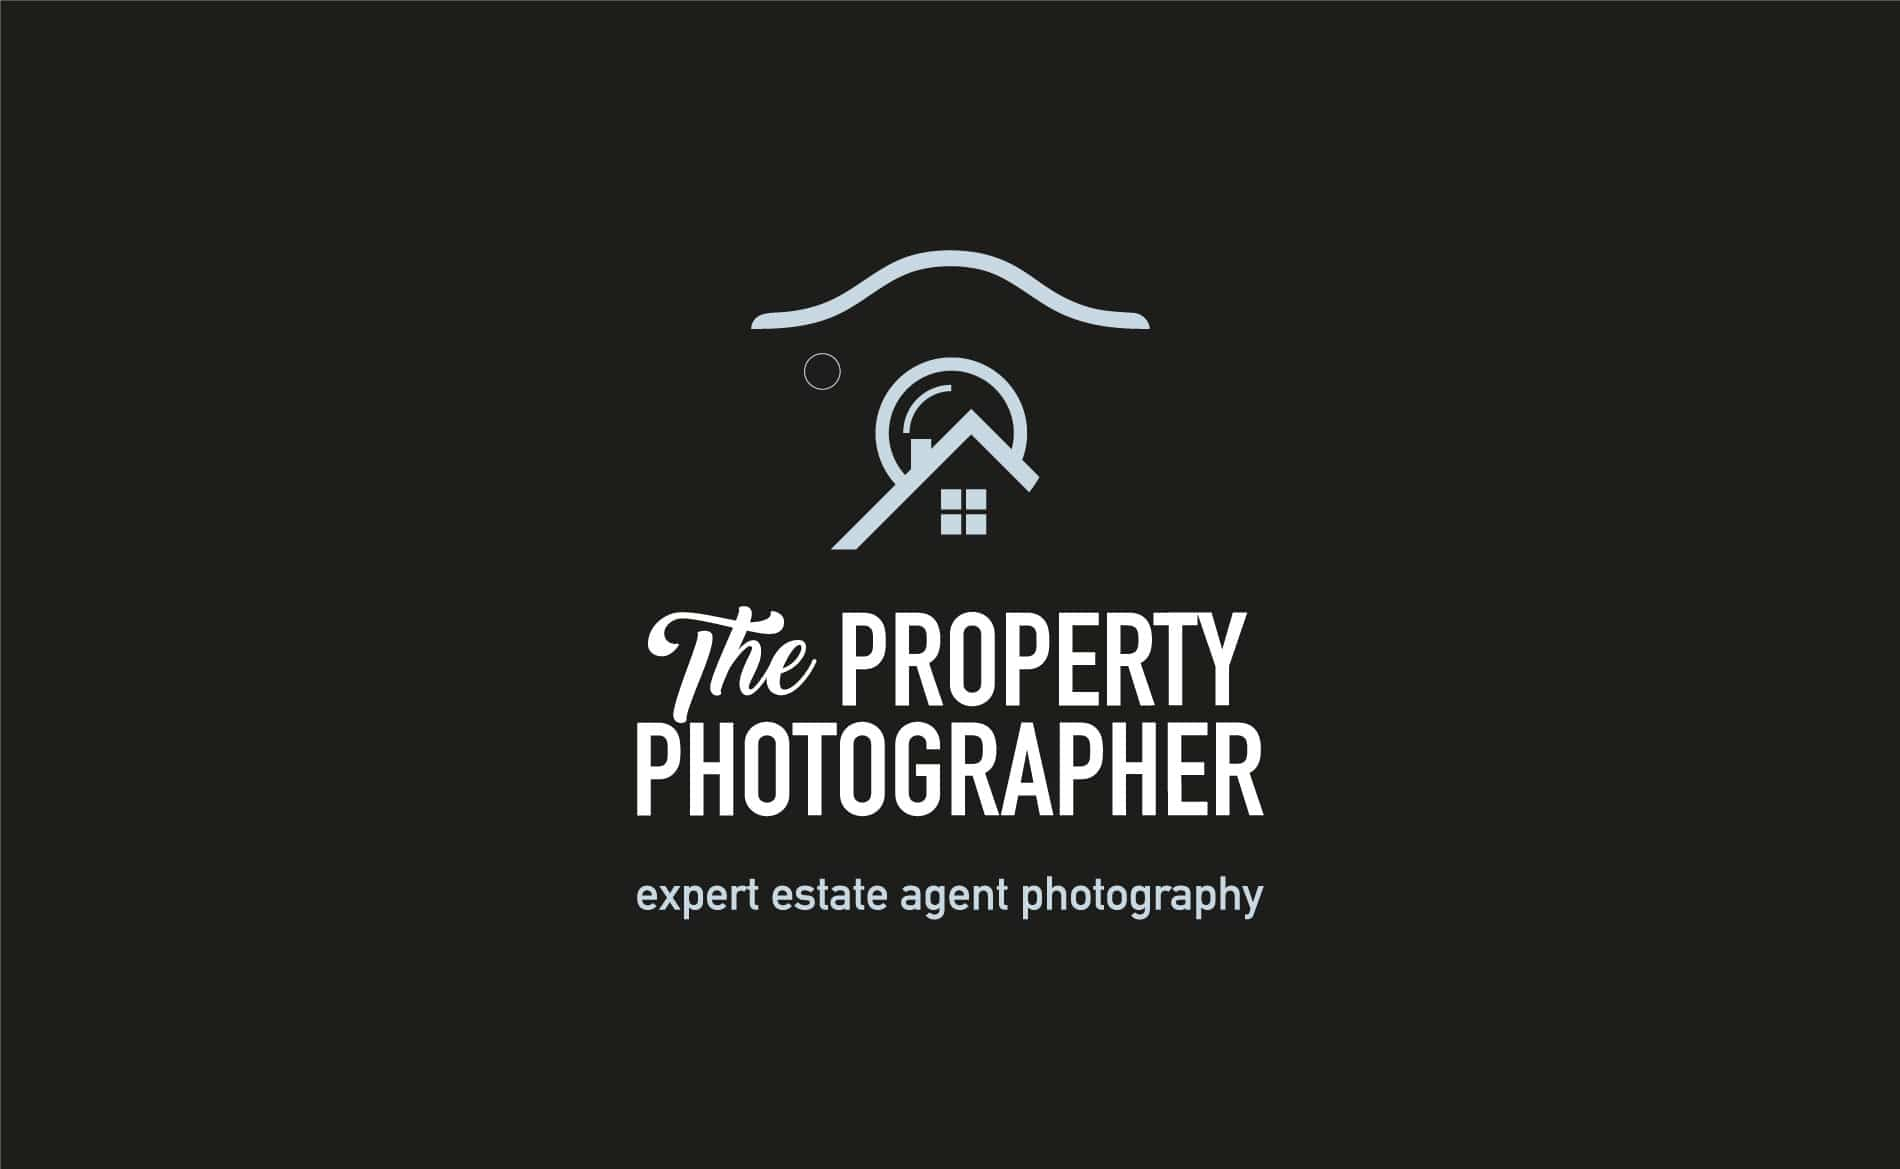 Graphic Design and Branding Services The Property Photographer Logo Design